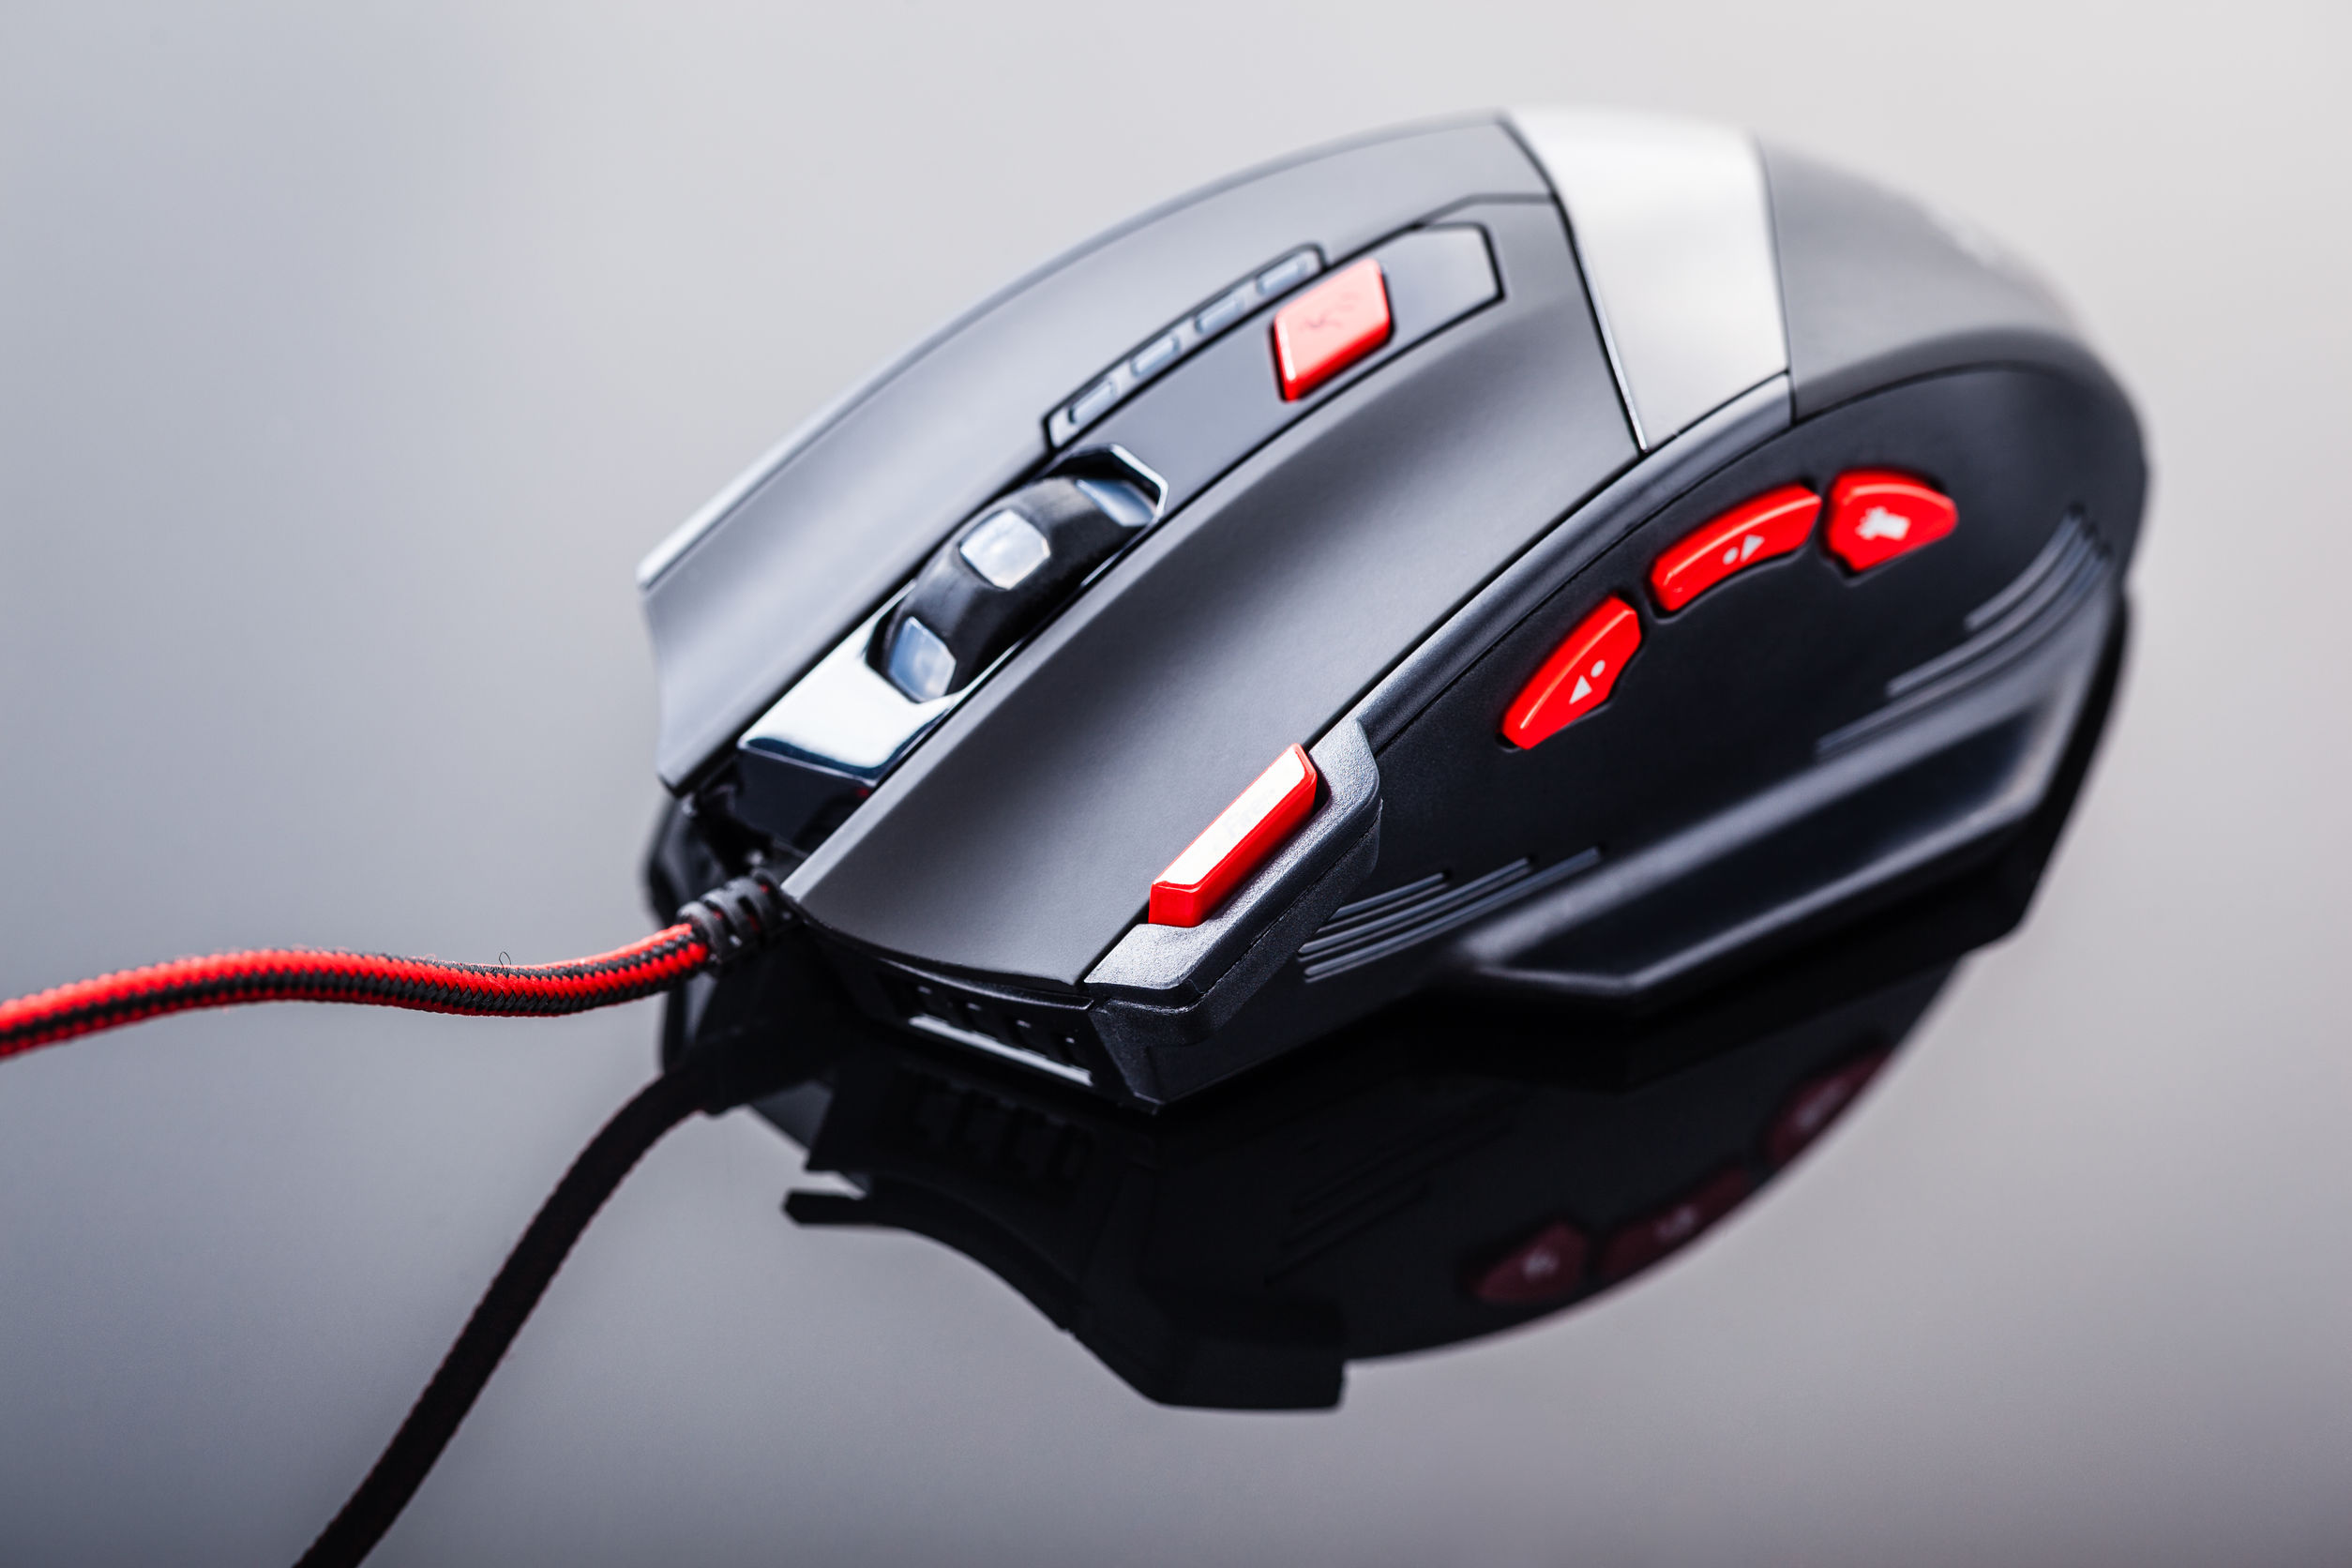 Best Gaming Mouse 2020: Shopping Guide & Review